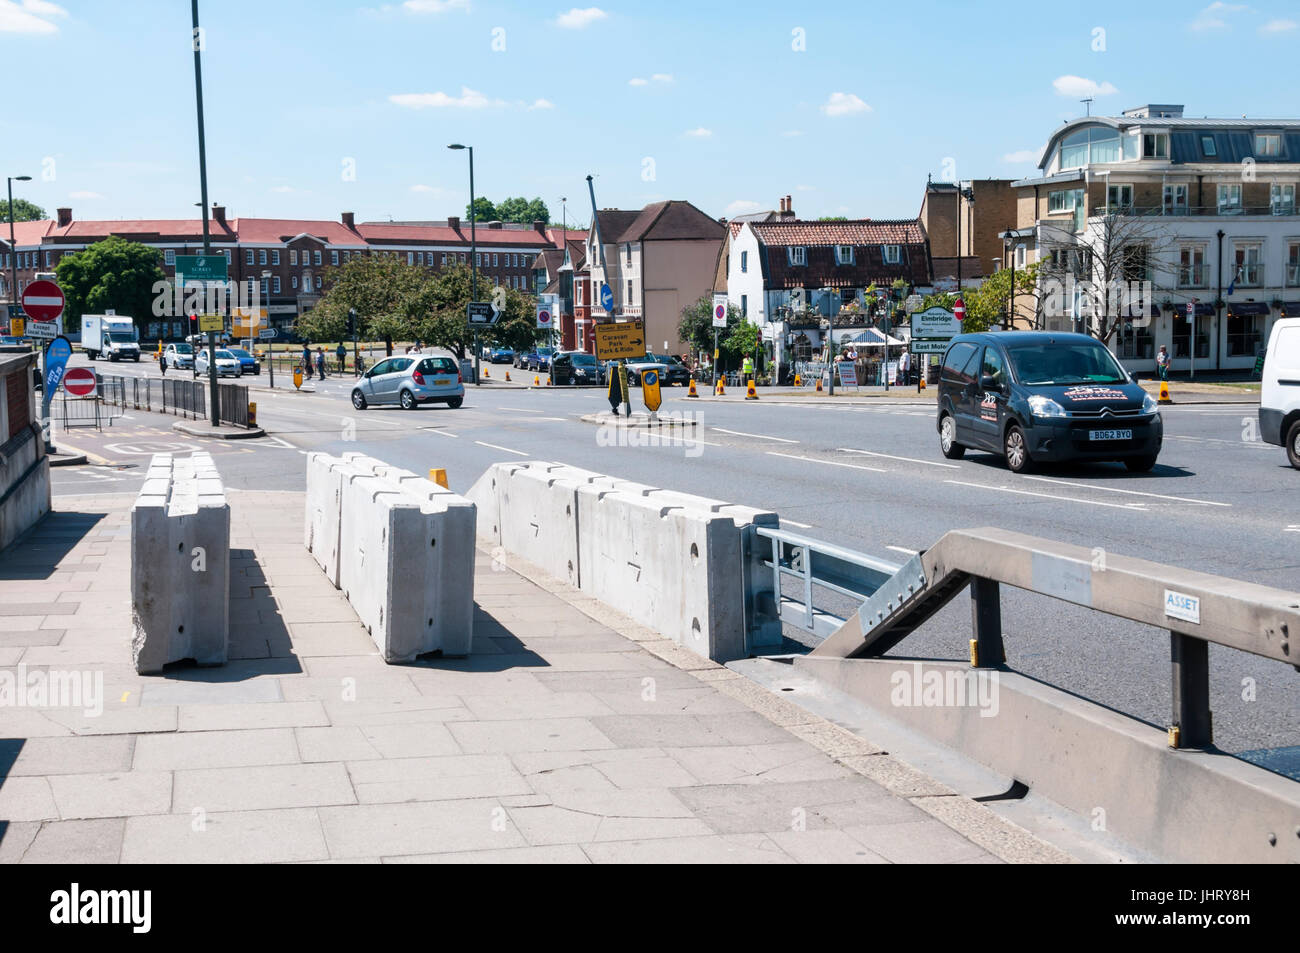 Anti-terrorism or anti-terrorist barriers at the southern end of Hampton Court bridge over the River Thames in London. - Stock Image